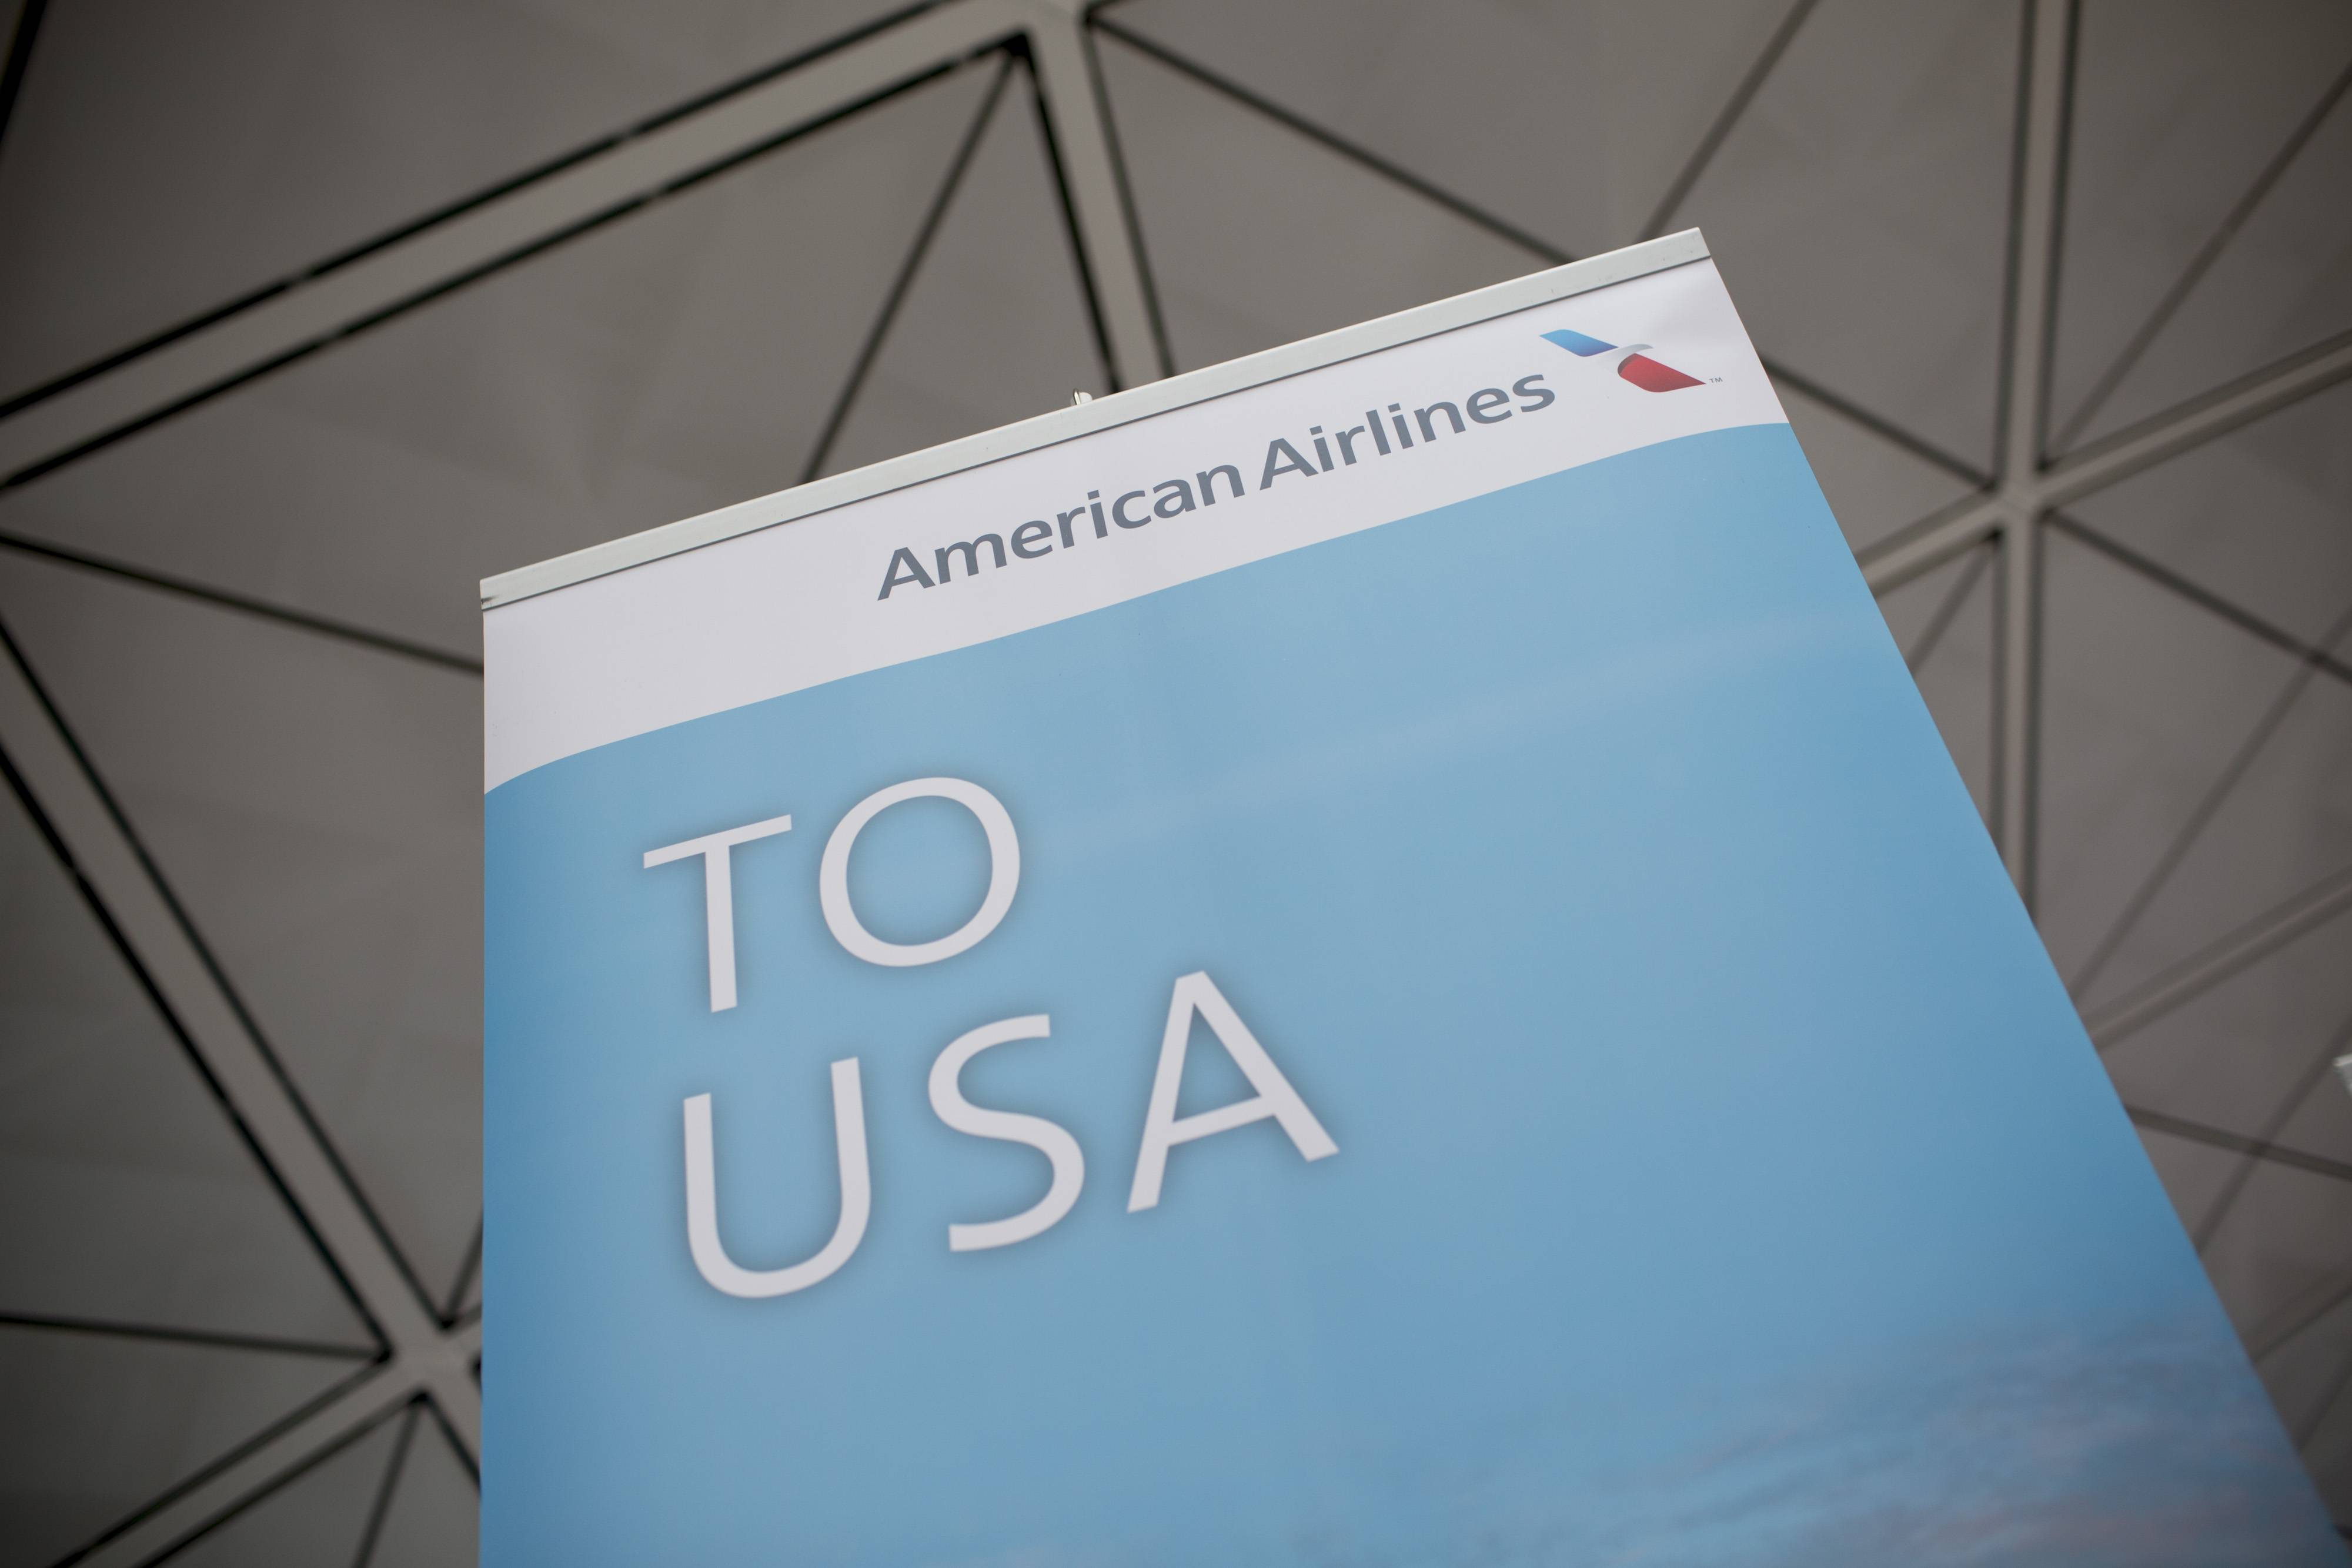 American Airlines Group Inc. signage is displayed Friday during a media event to inaugurate the company's Hong Kong-Dallas route at Hong Kong International Airport in Hong Kong.